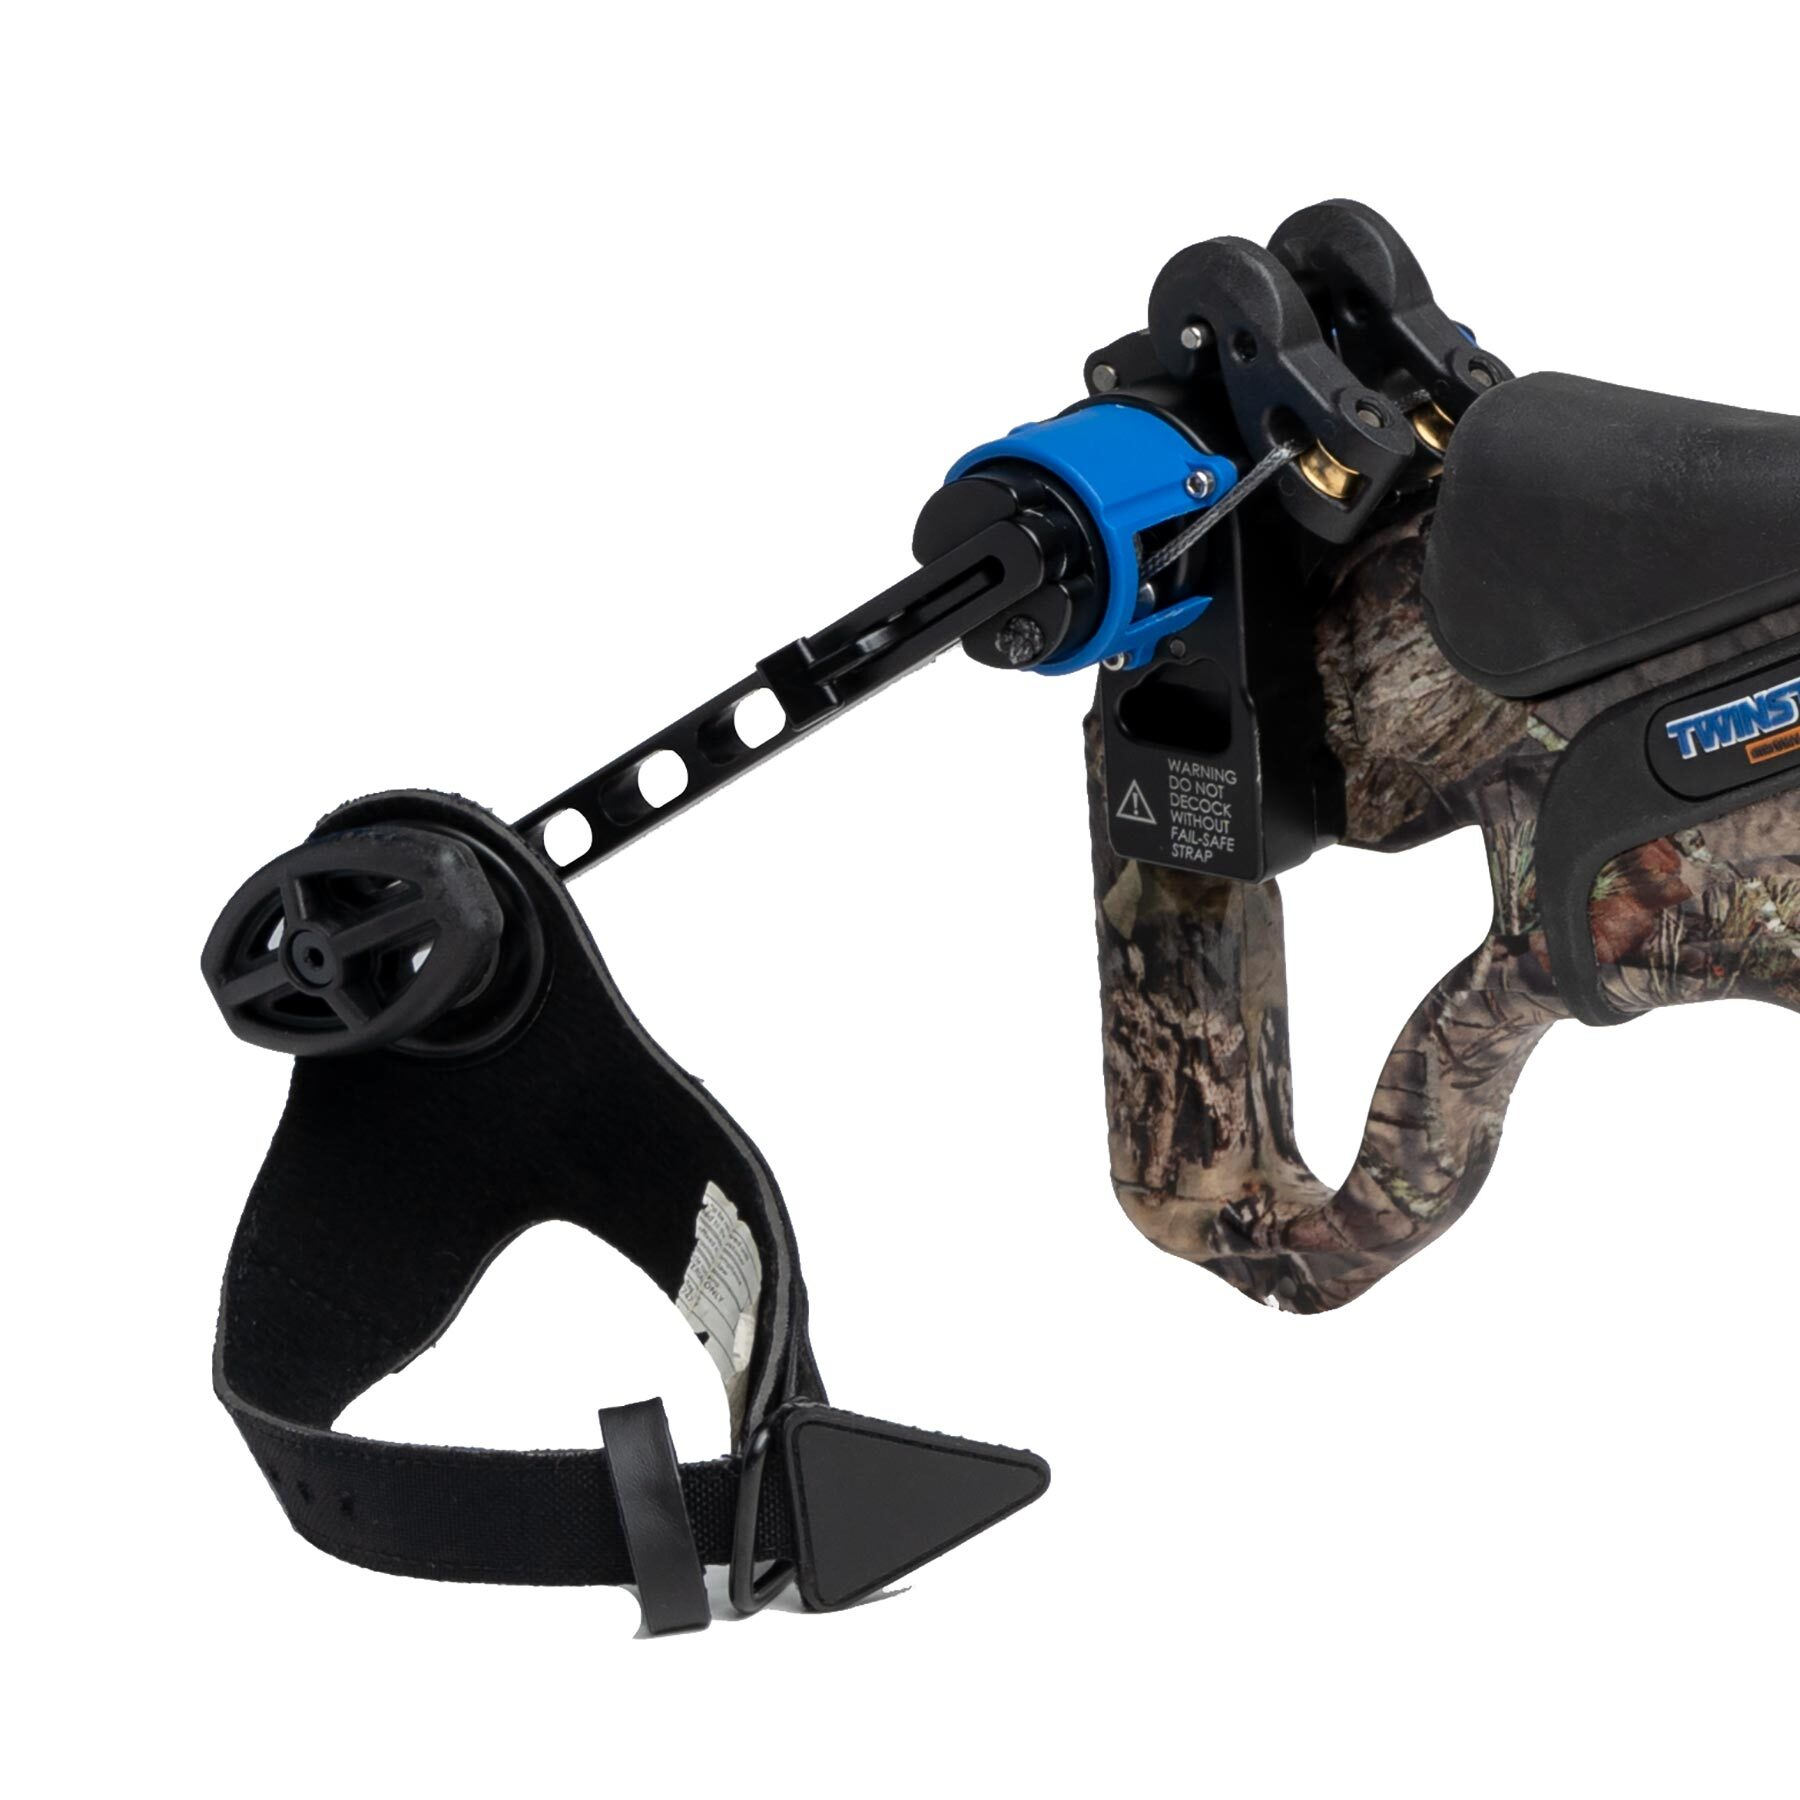 Charger EXT External crossbow crank with FailSafe strap